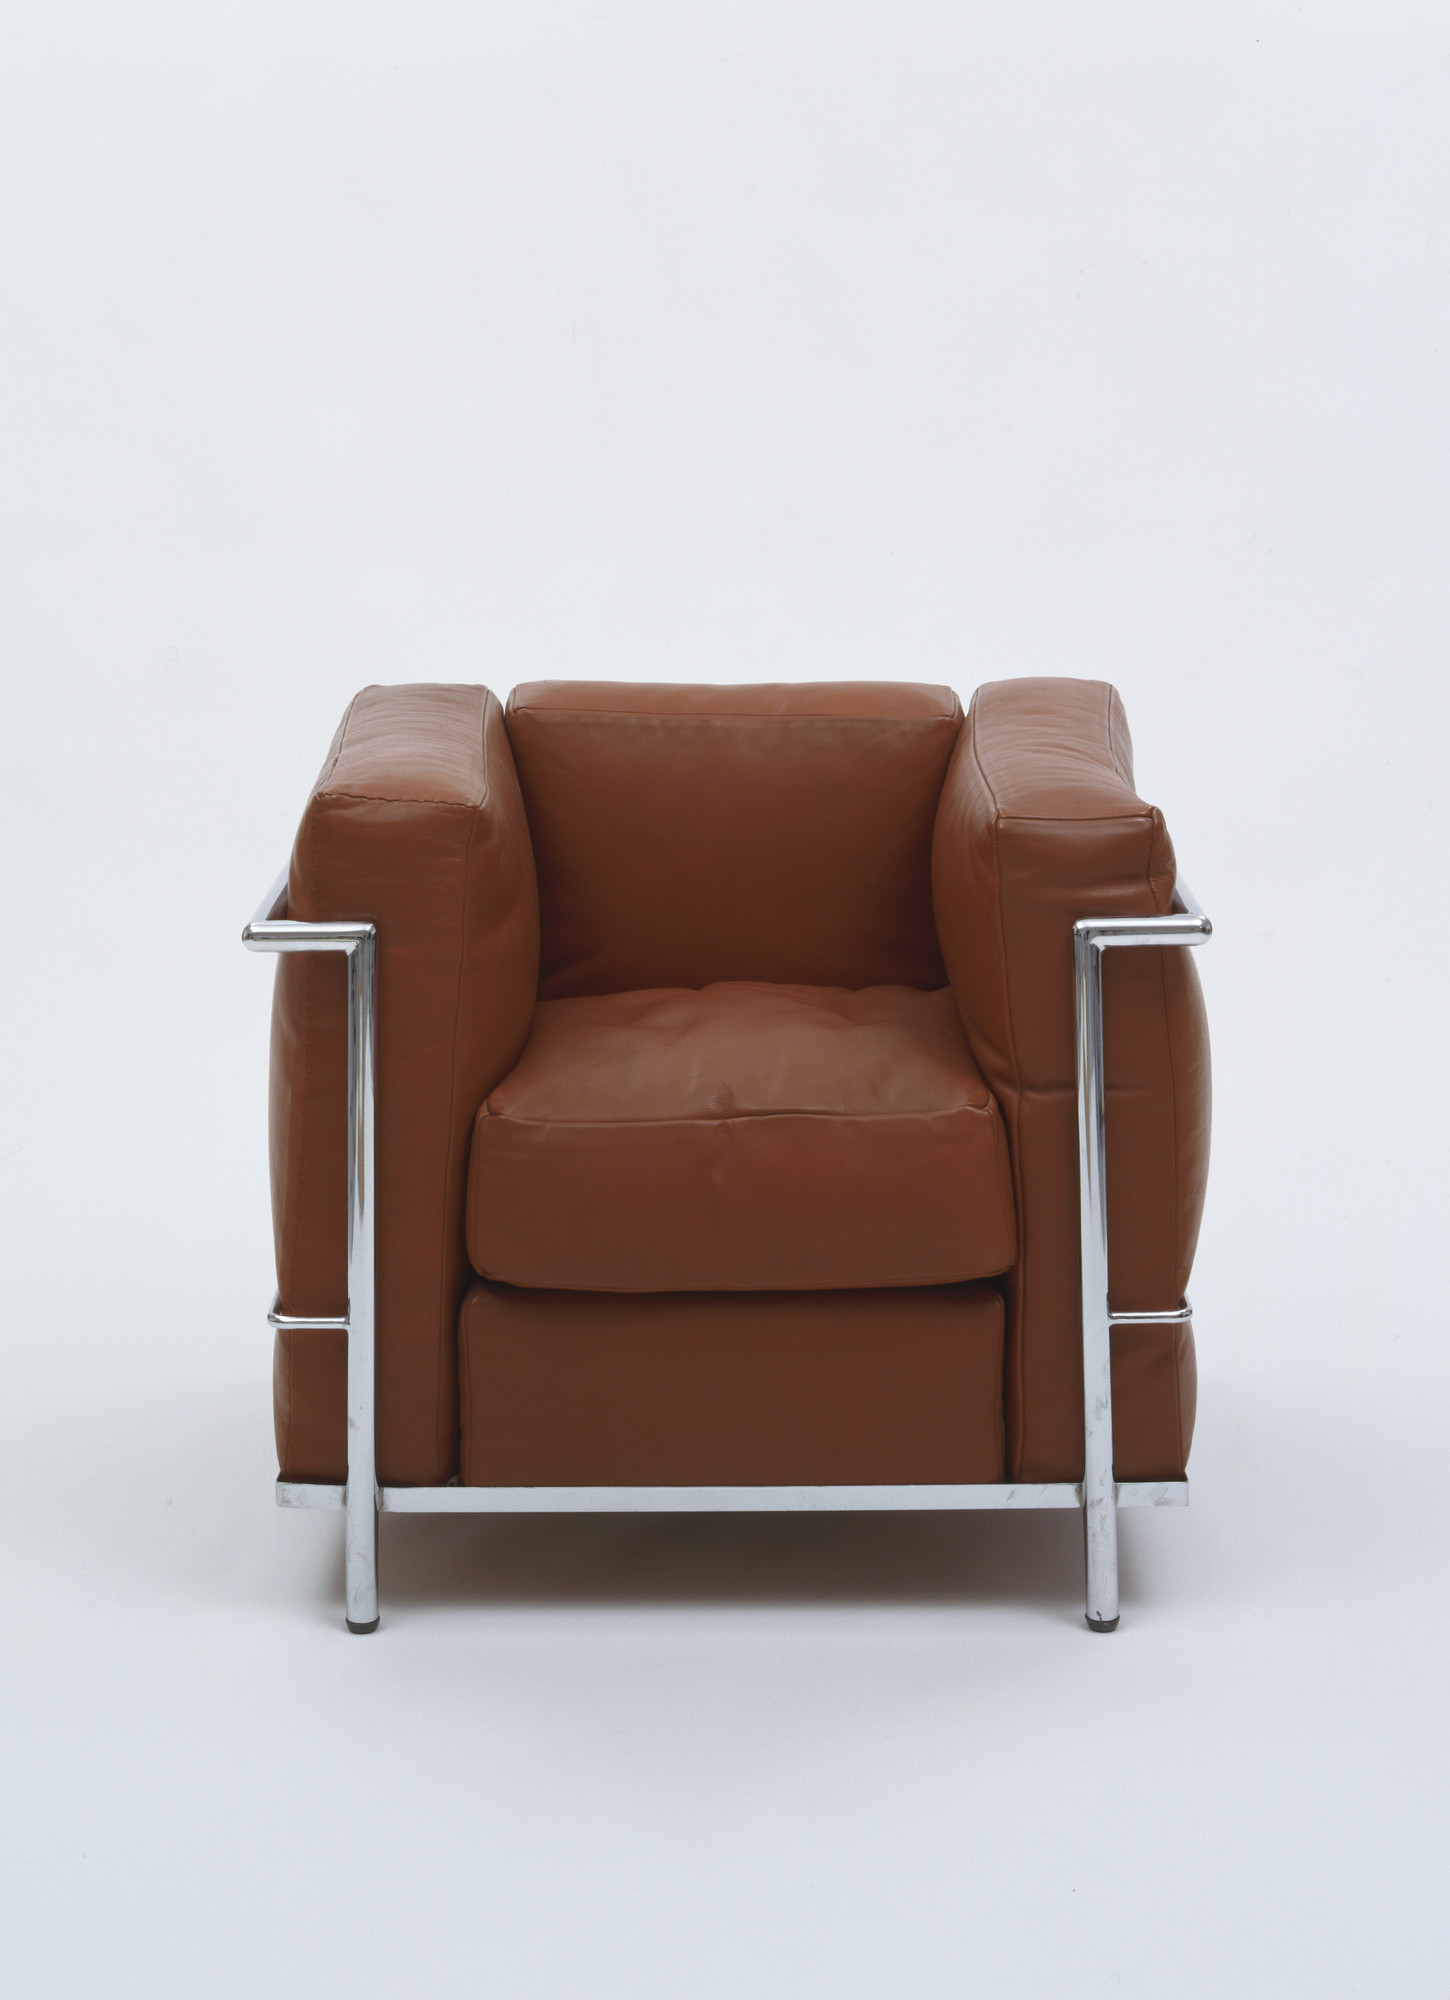 Le Corbusier (Charles-Édouard Jeanneret), Pierre Jeanneret, Charlotte Perriand. Easy Chair (Fauteuil Grand Confort). 1928